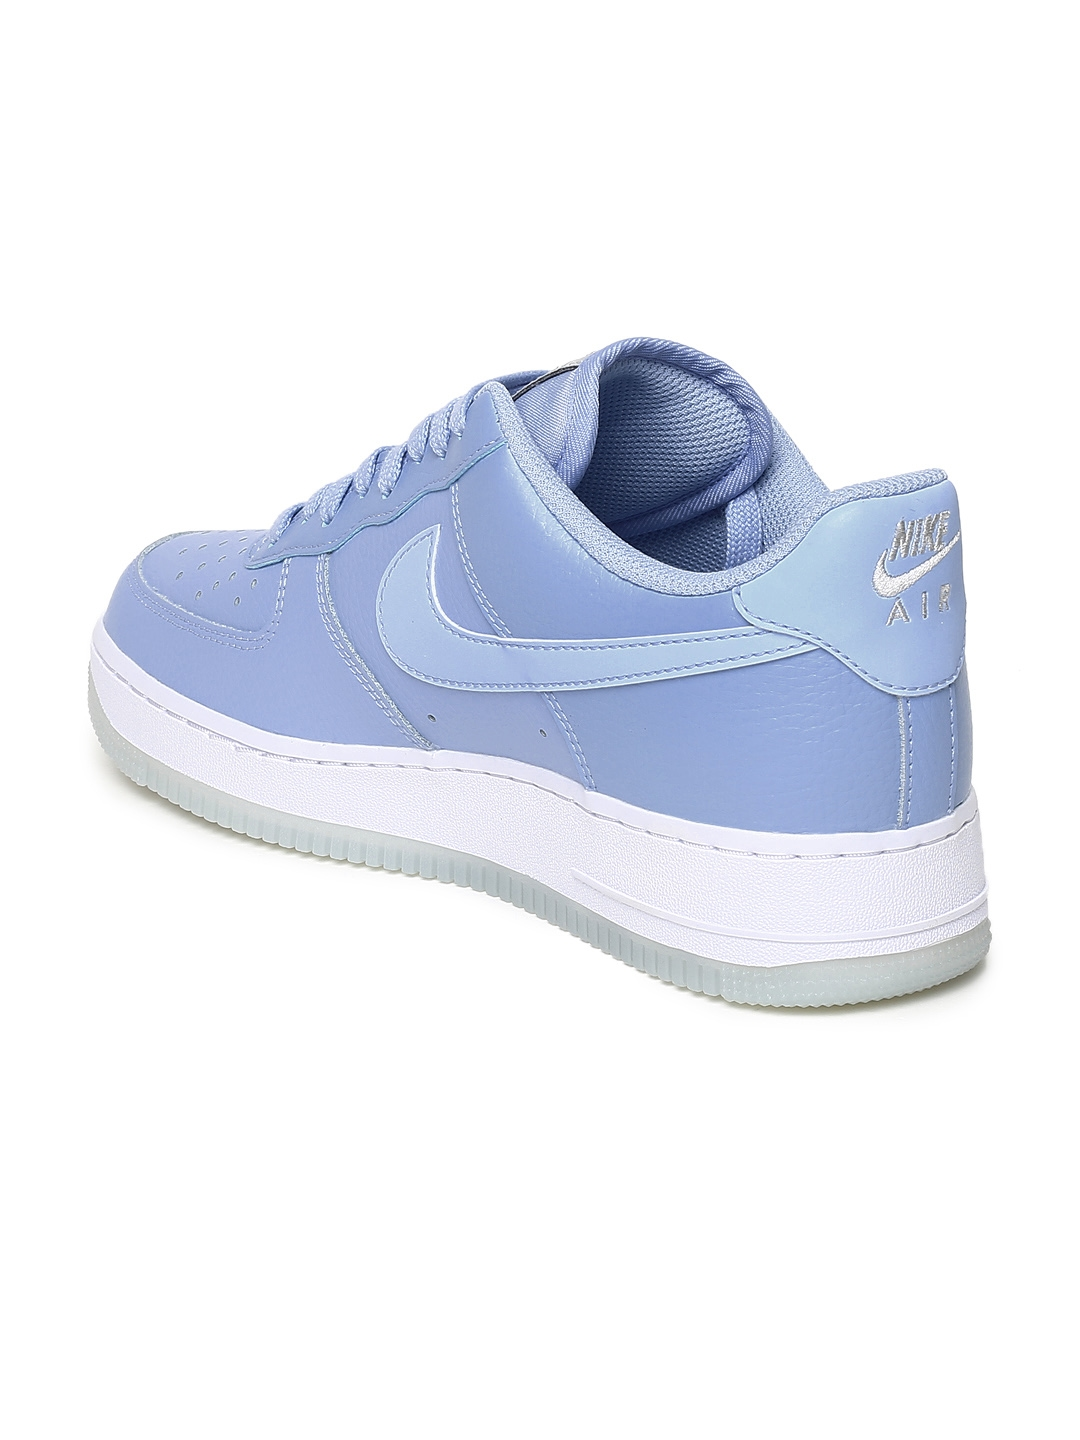 new style 9129a 698c5 Nike Women Blue Air Force 1  07 Ess Leather Sneakers